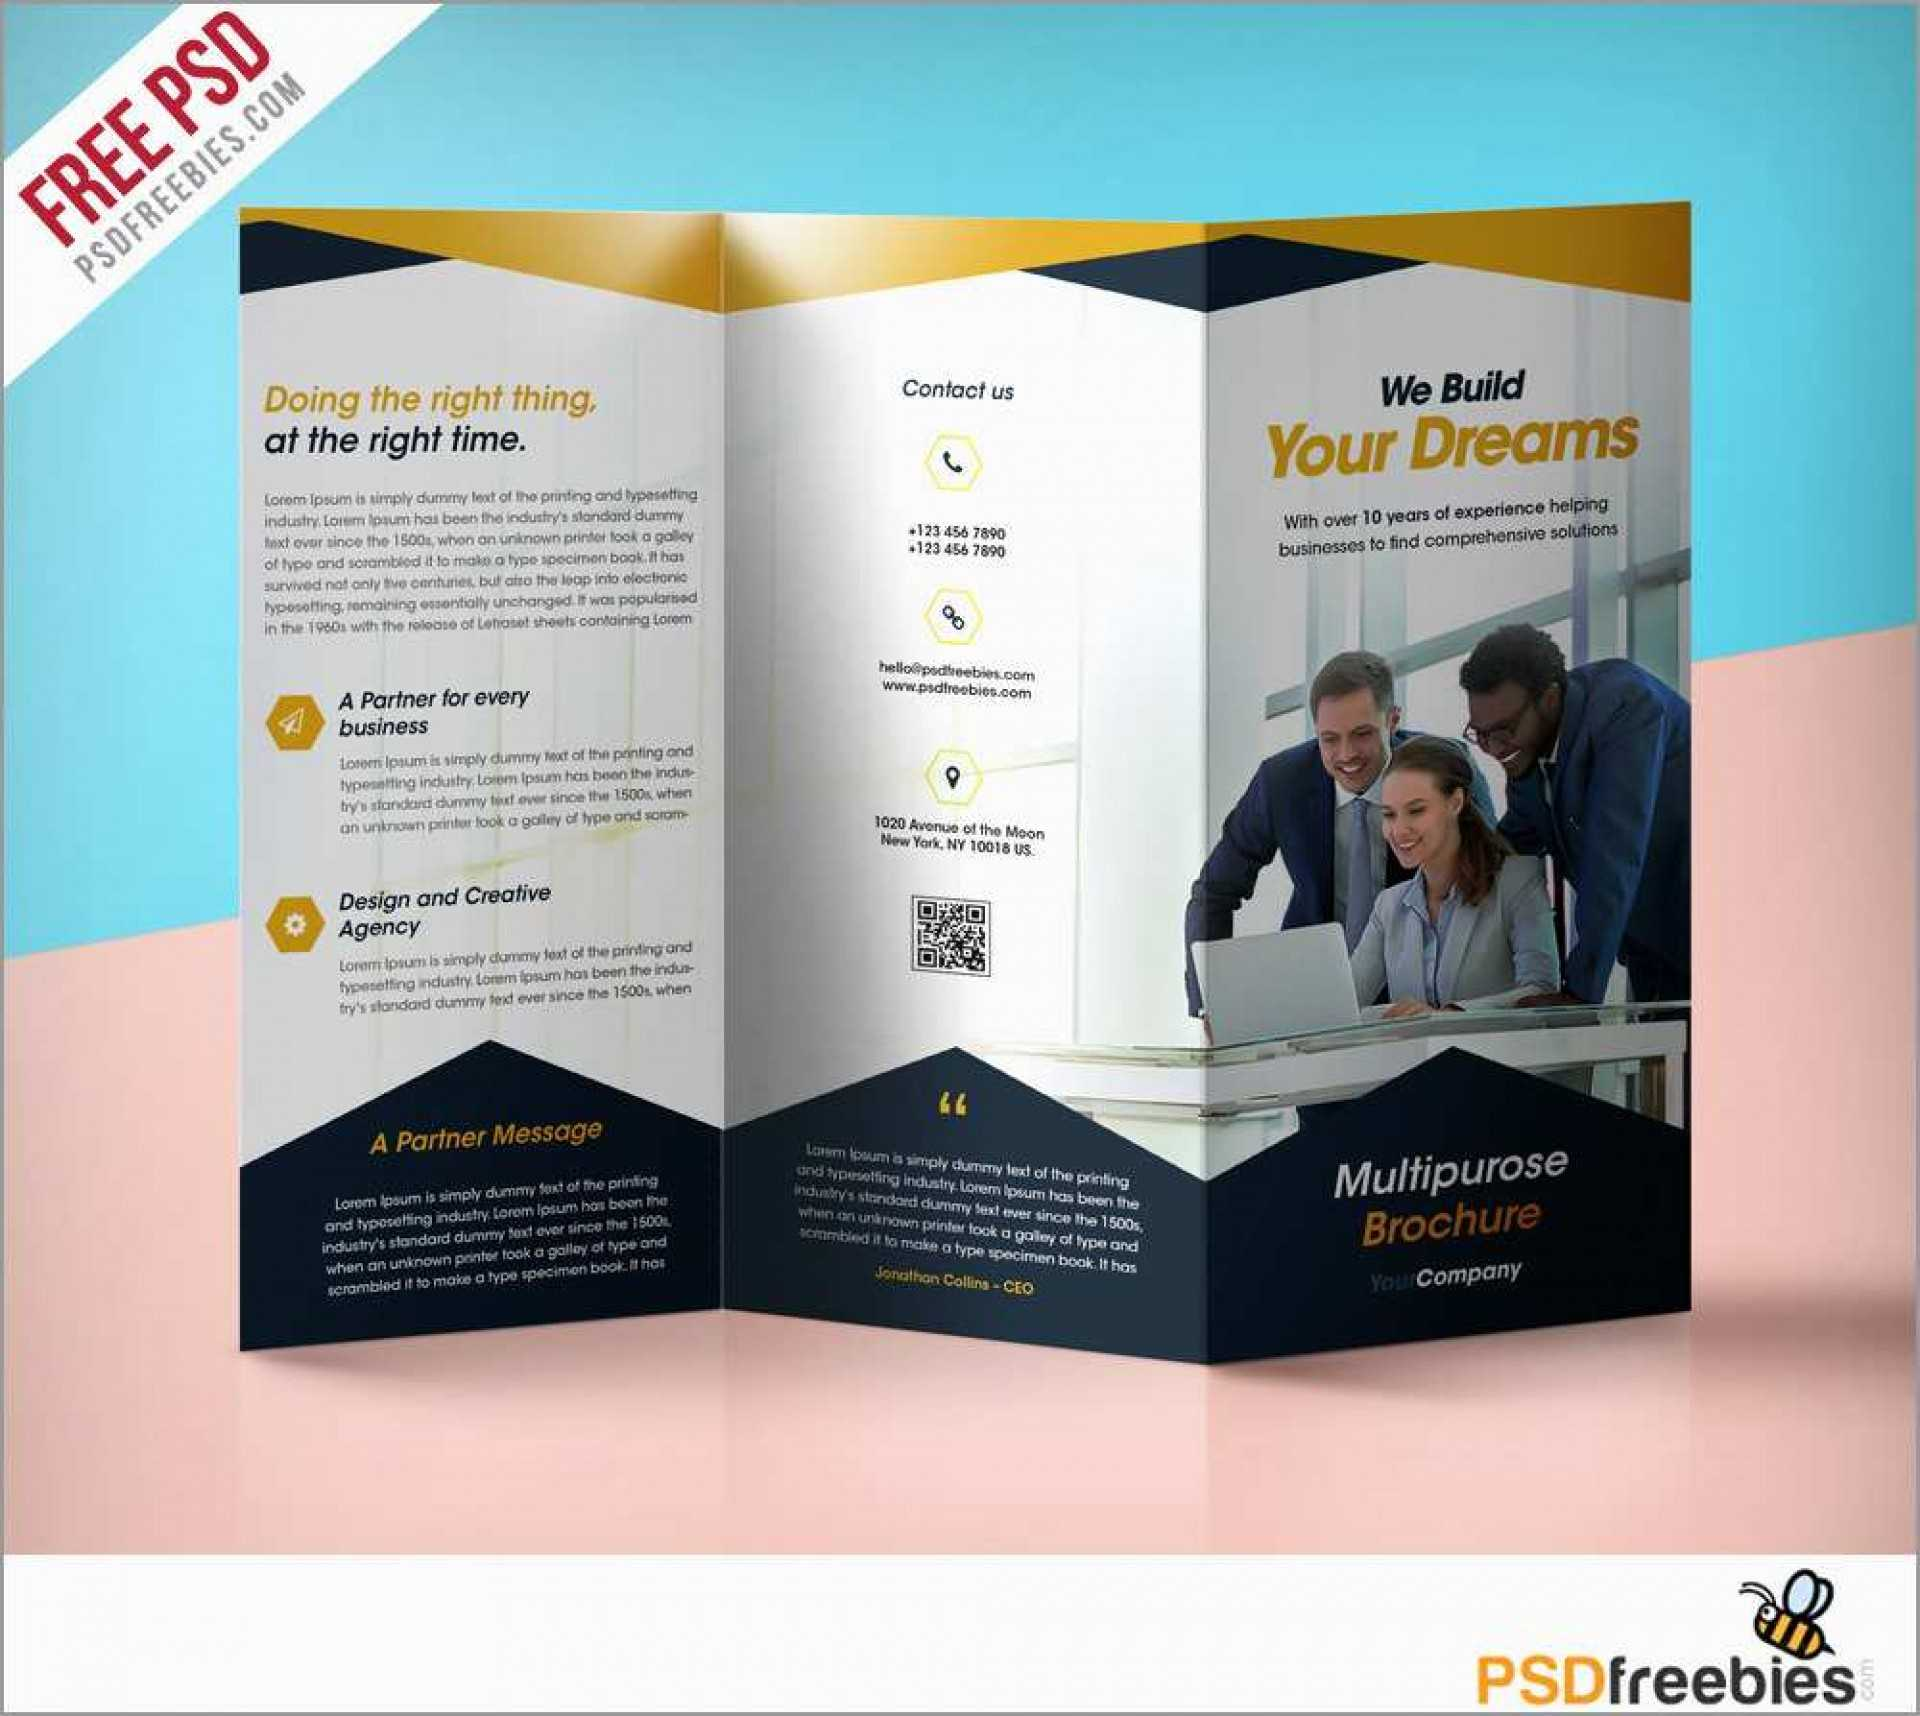 028 Wordtpls Template Ideas Brochure Templates Free Download Intended For Free Brochure Templates For Word 2010